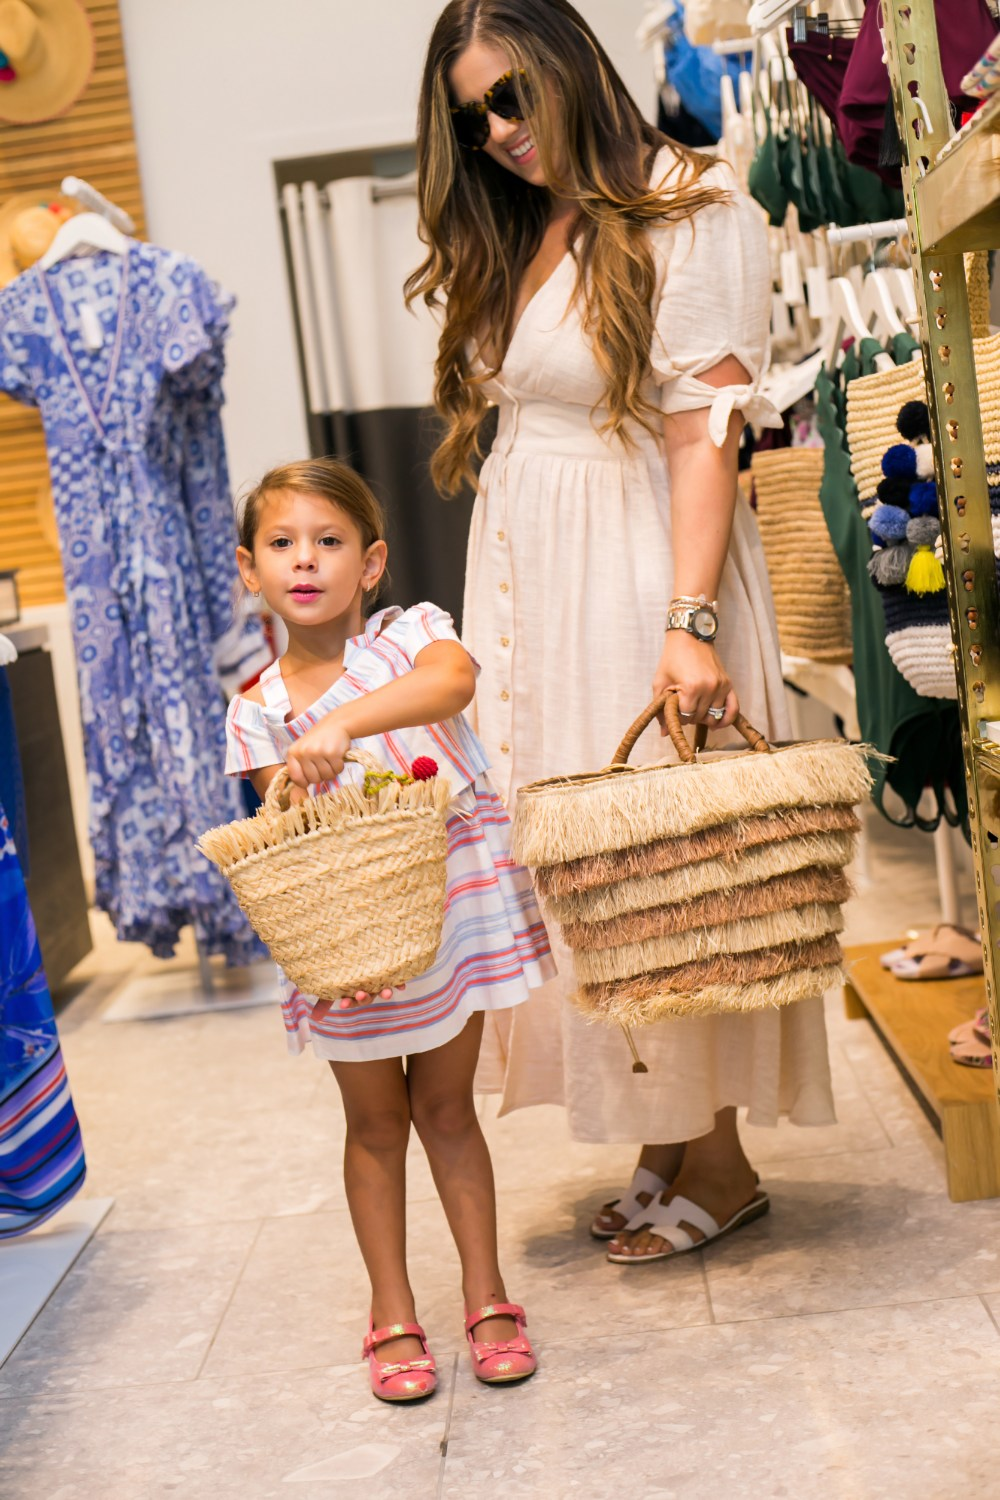 The Royal Poinciana Plaza family shopping day, Florida blogger, Jaime cittadino and family